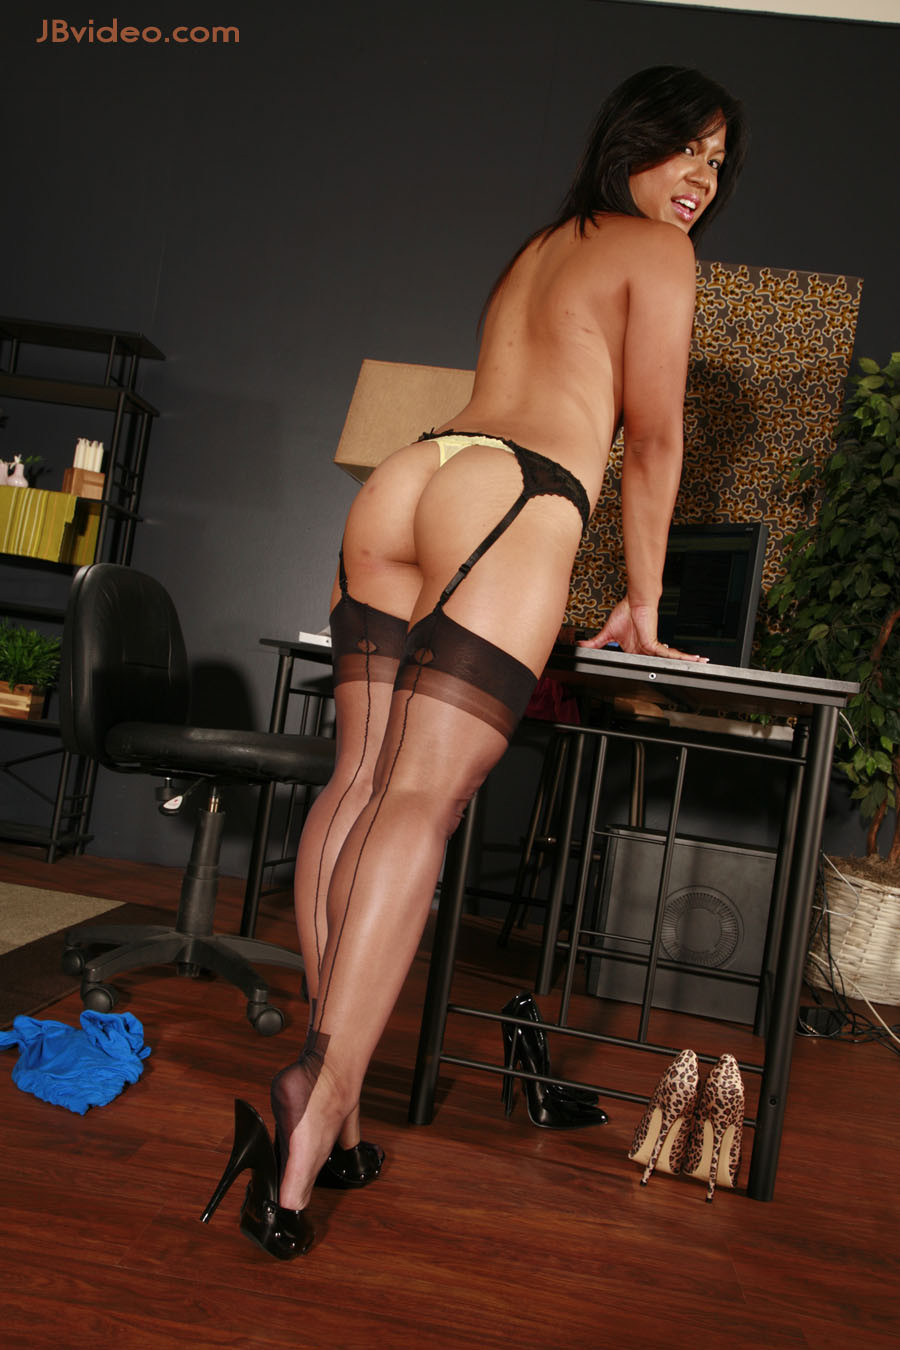 Tasha lyn wears nylons in her office